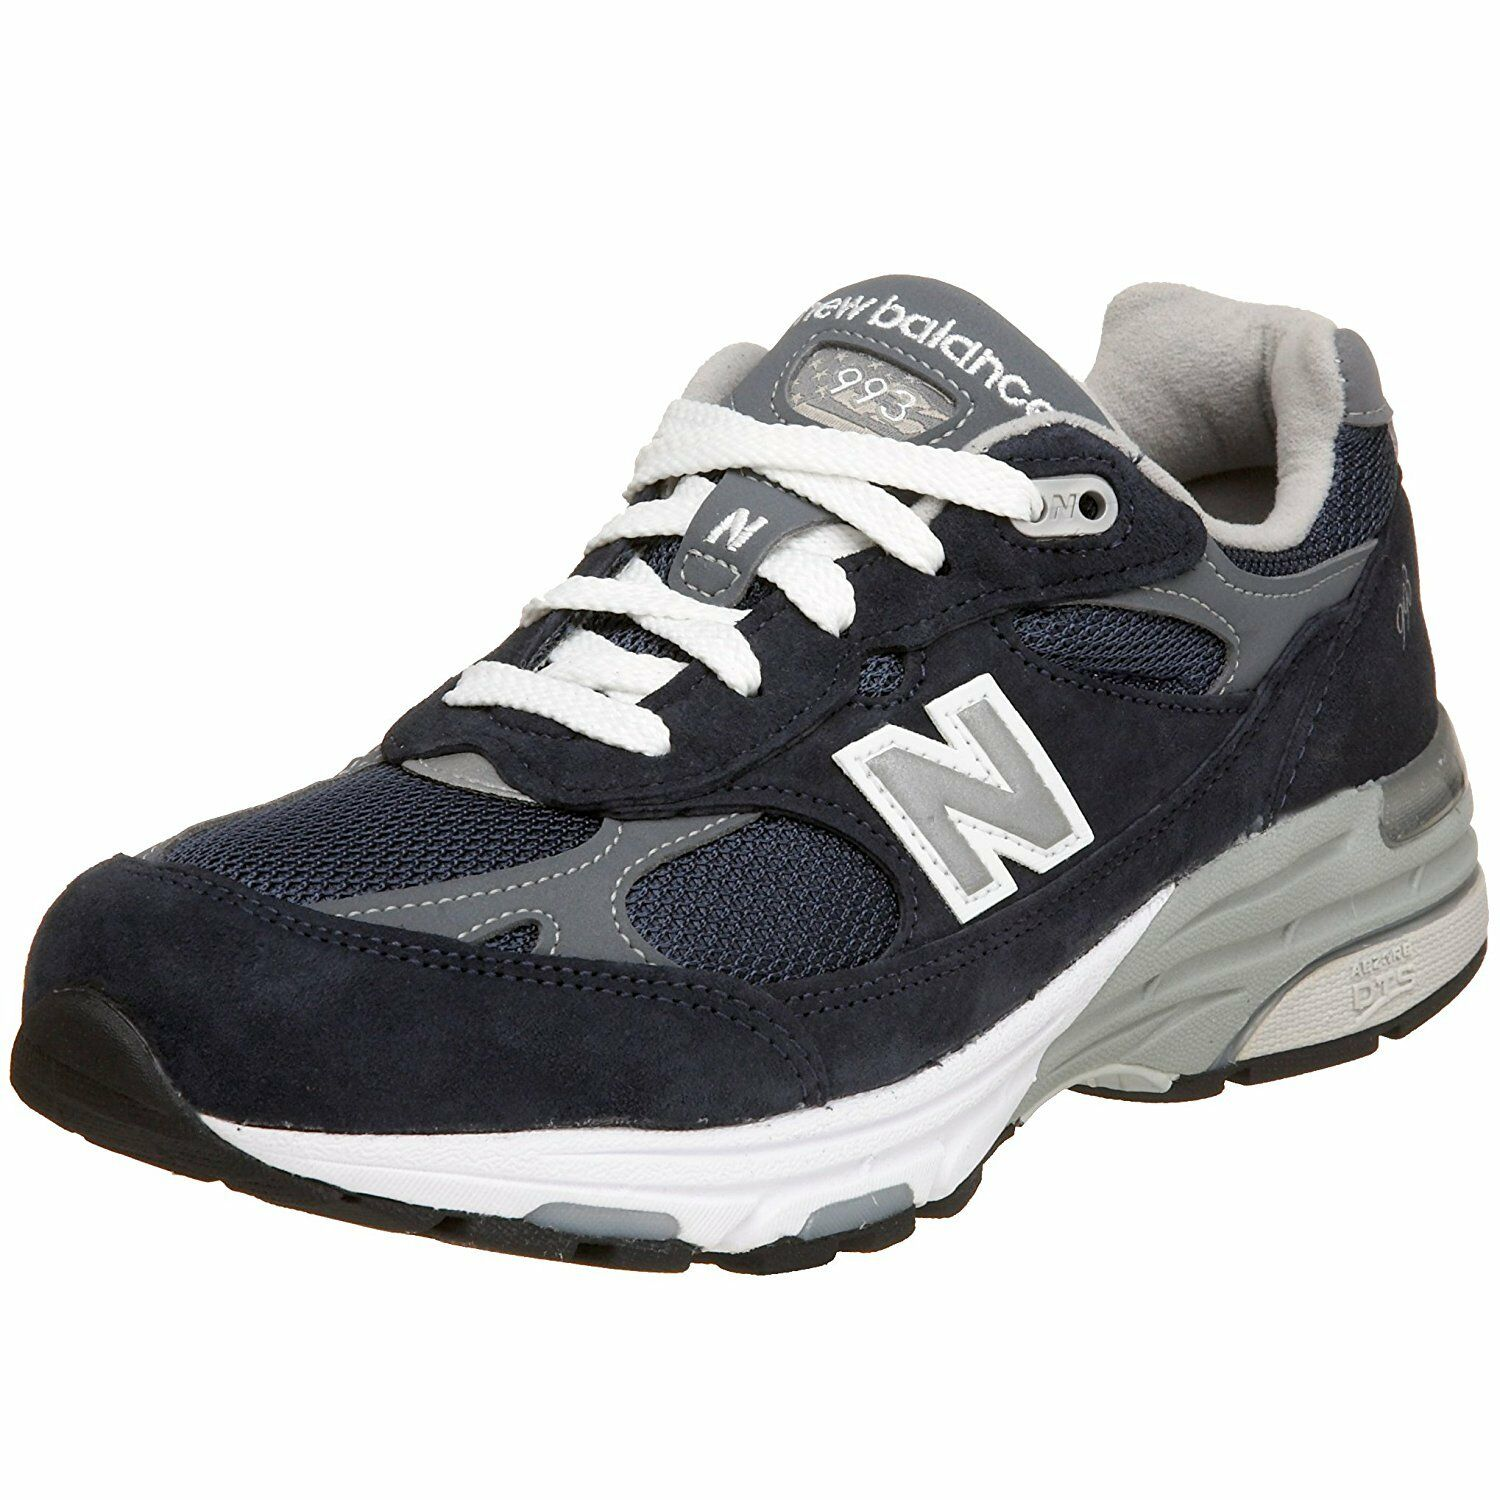 Men's/Women's New Balance Women's WR993 Running Shoe High quality and cheap Trendy List of explosions